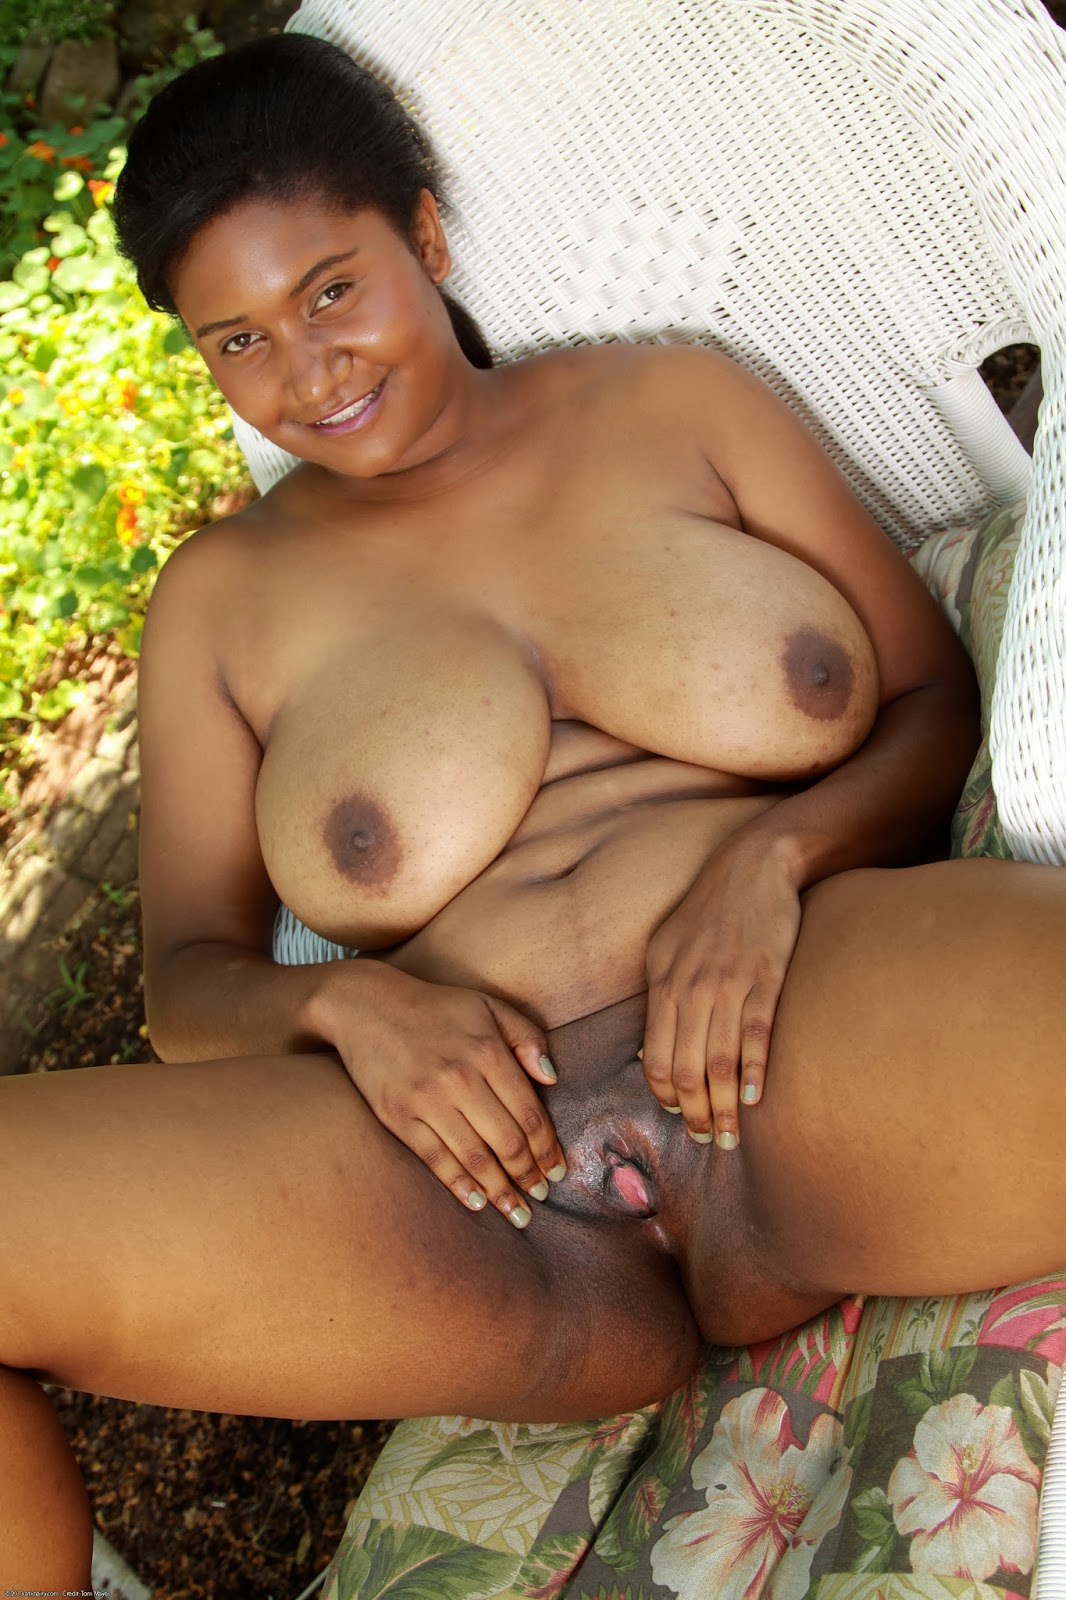 Foto gratis negras sexo yet did